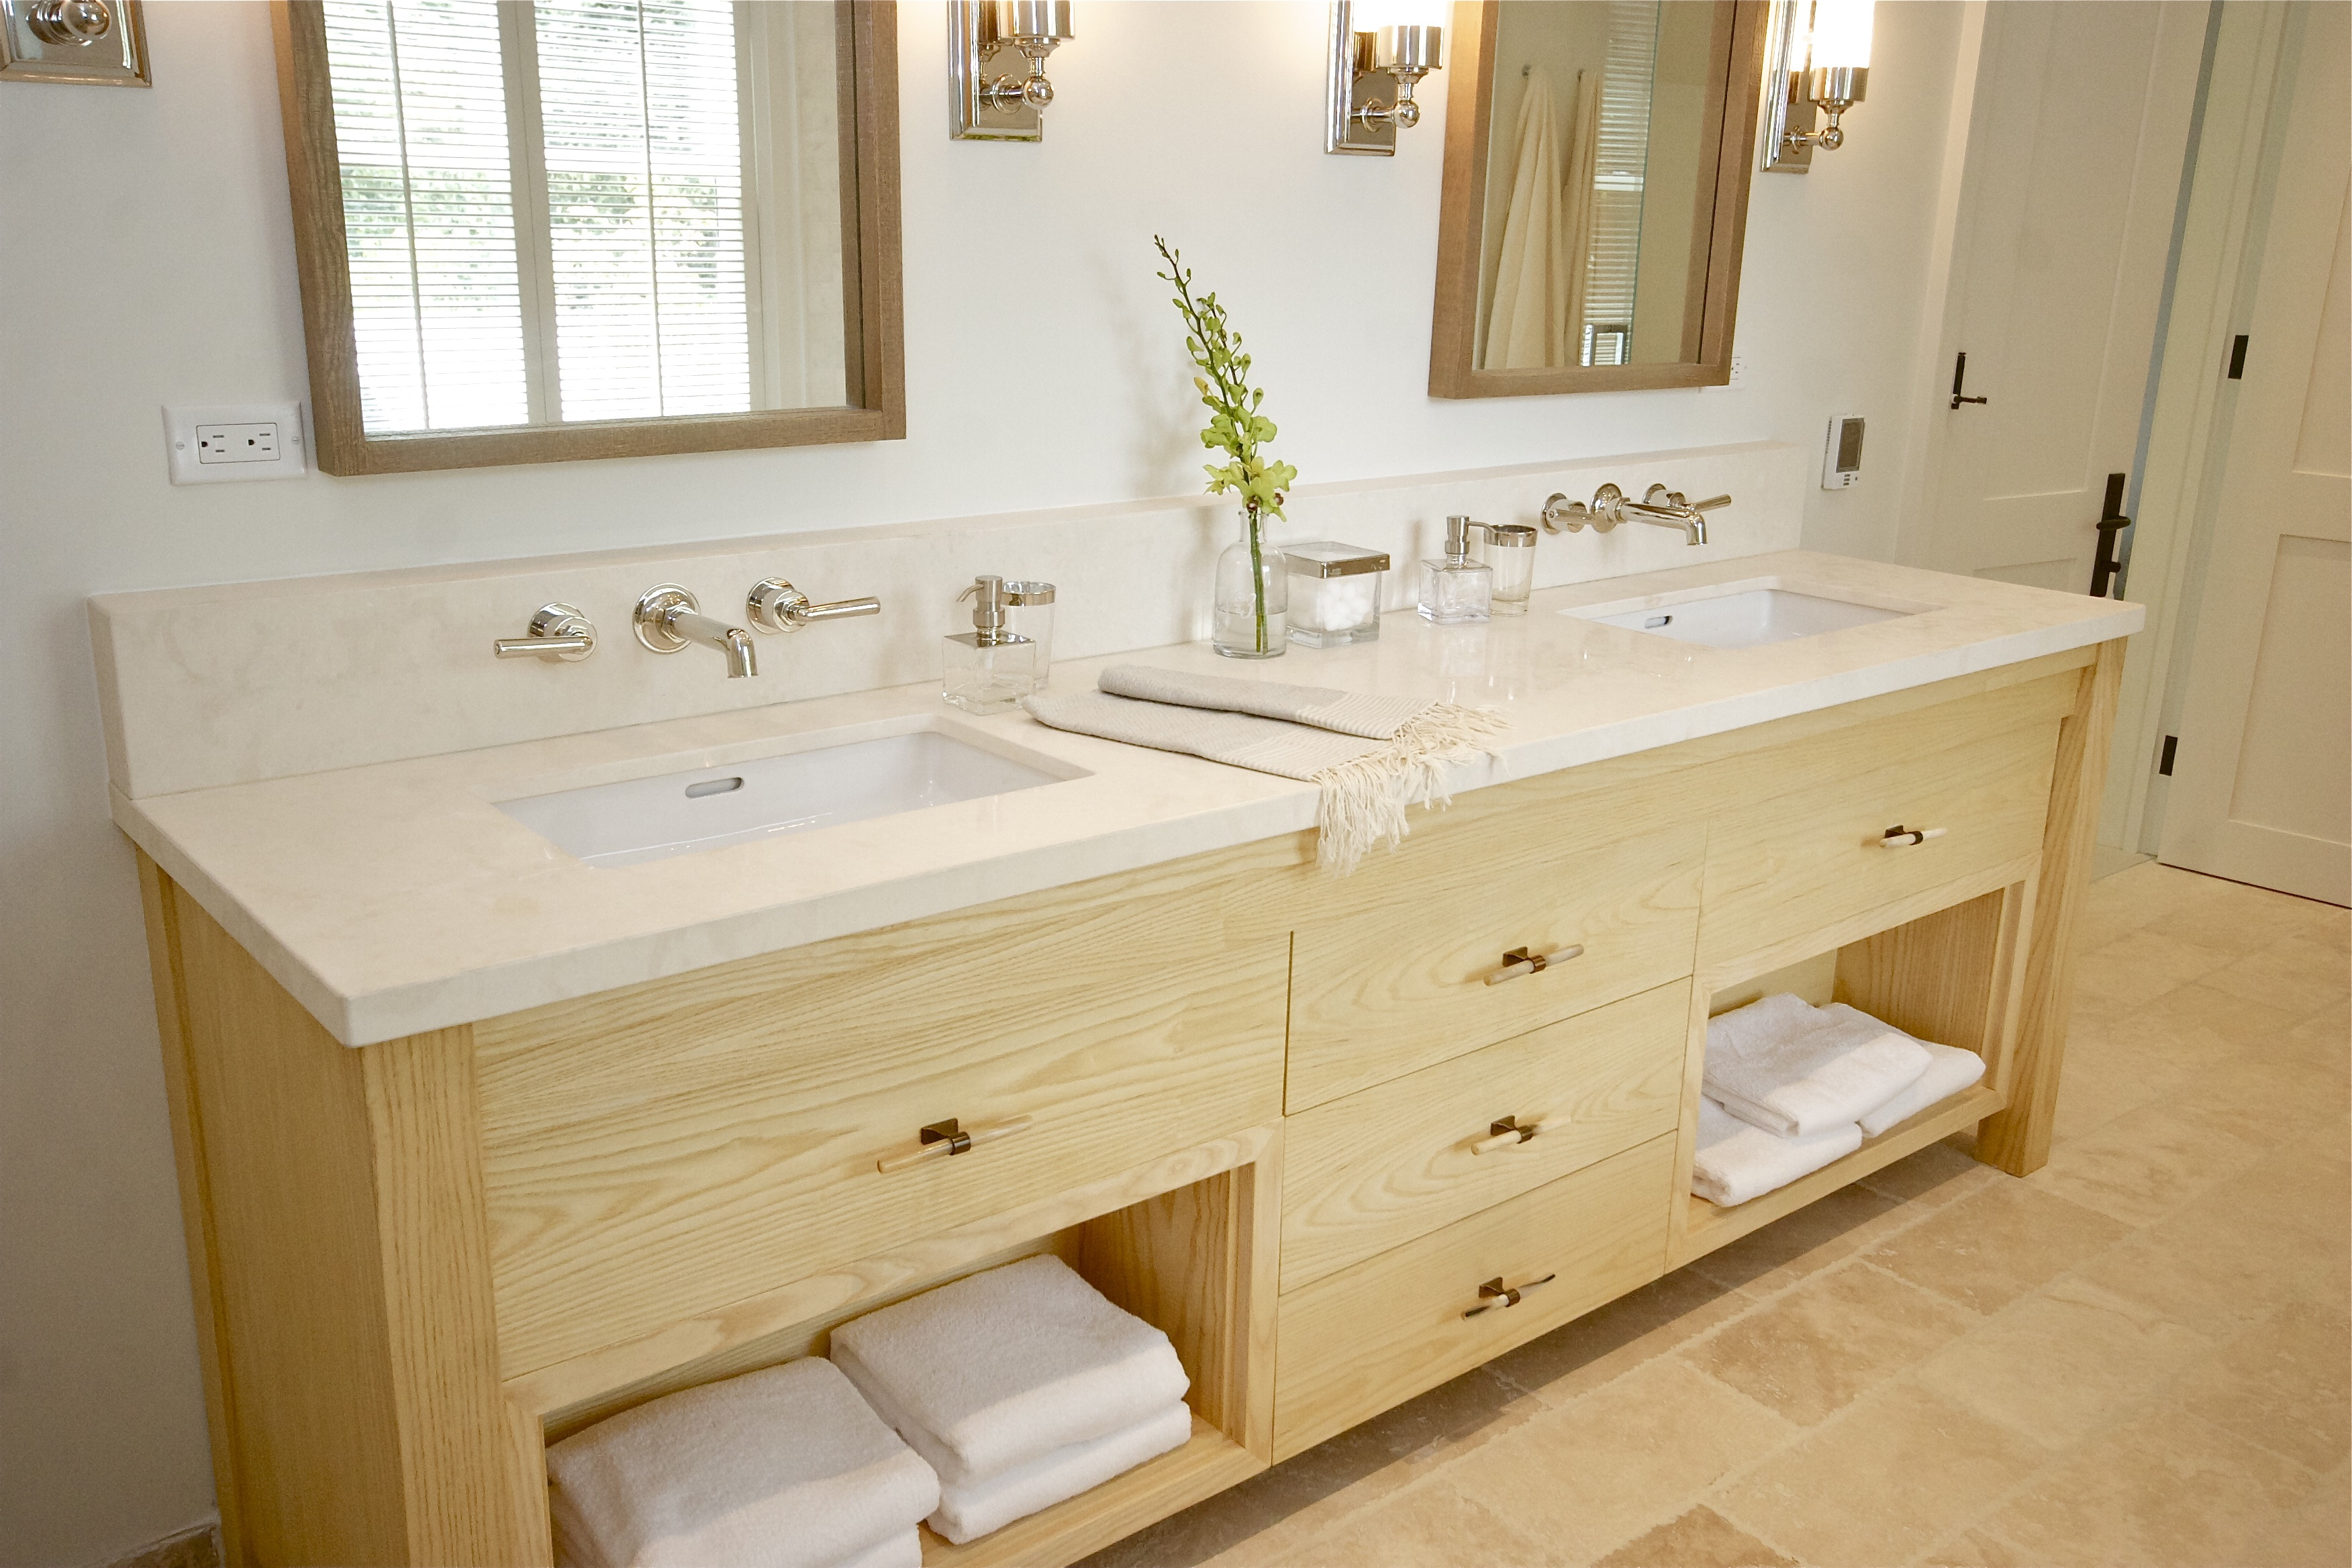 Limestone bathroom countertops